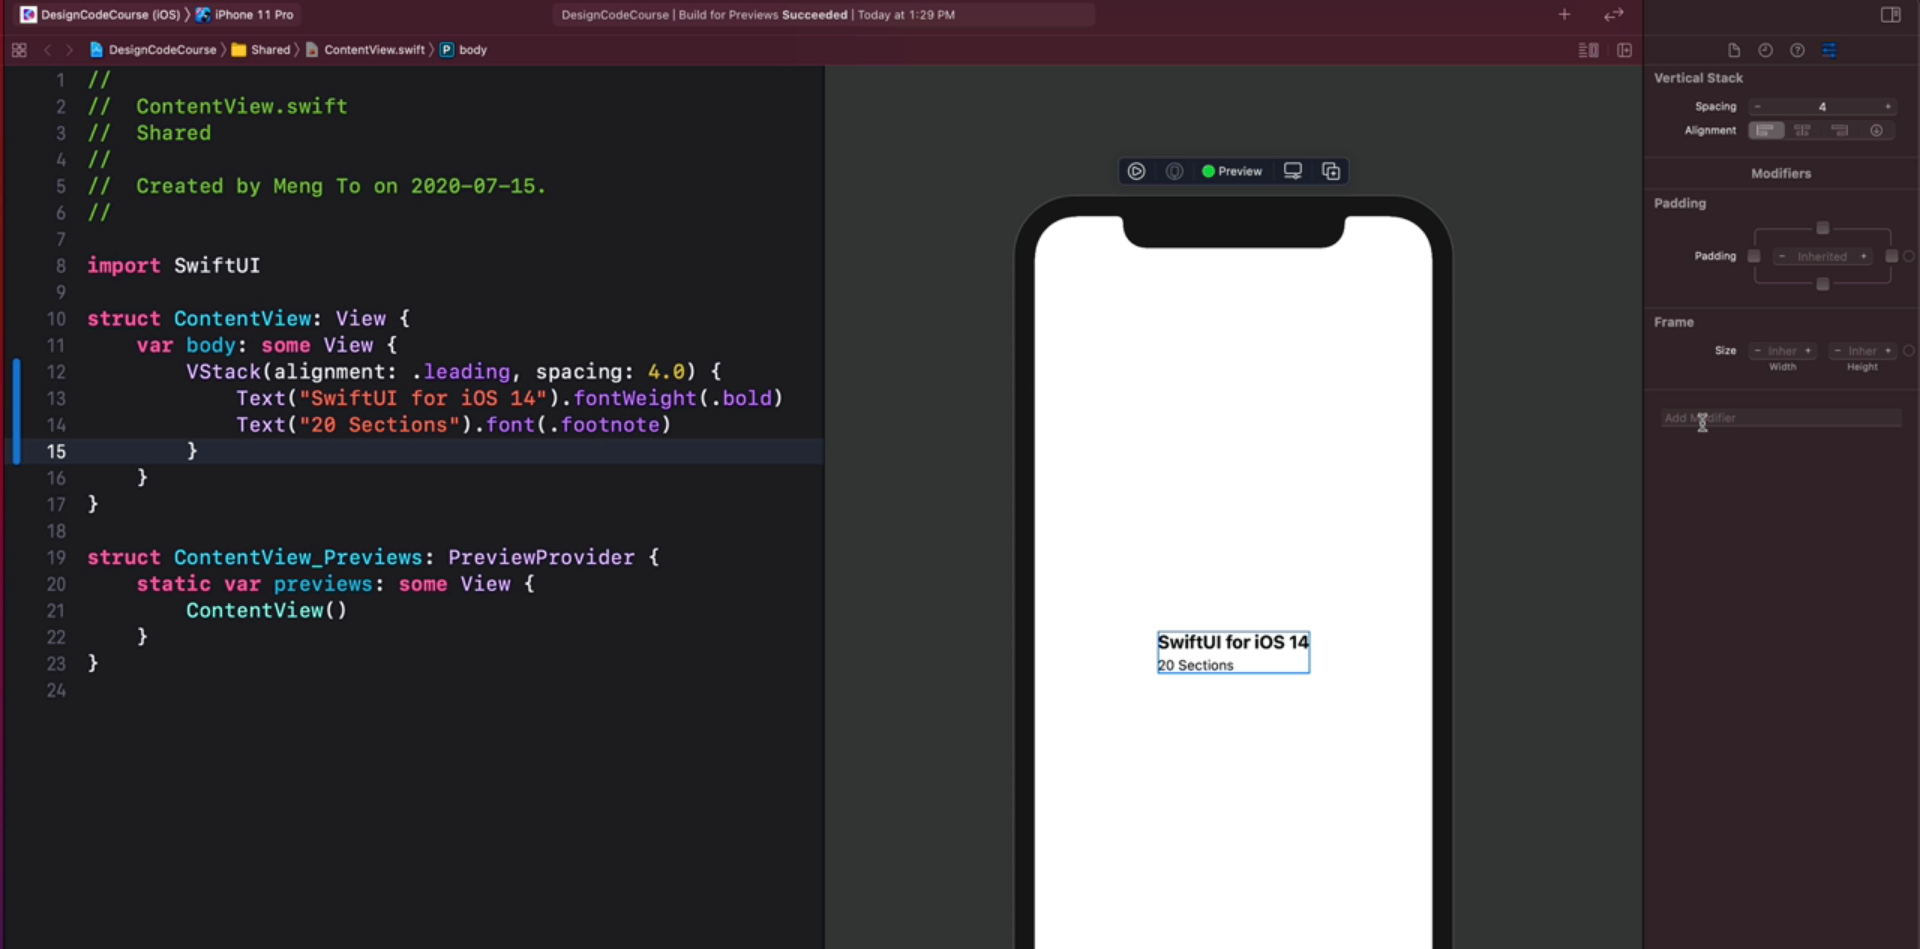 swiftui-section2-5